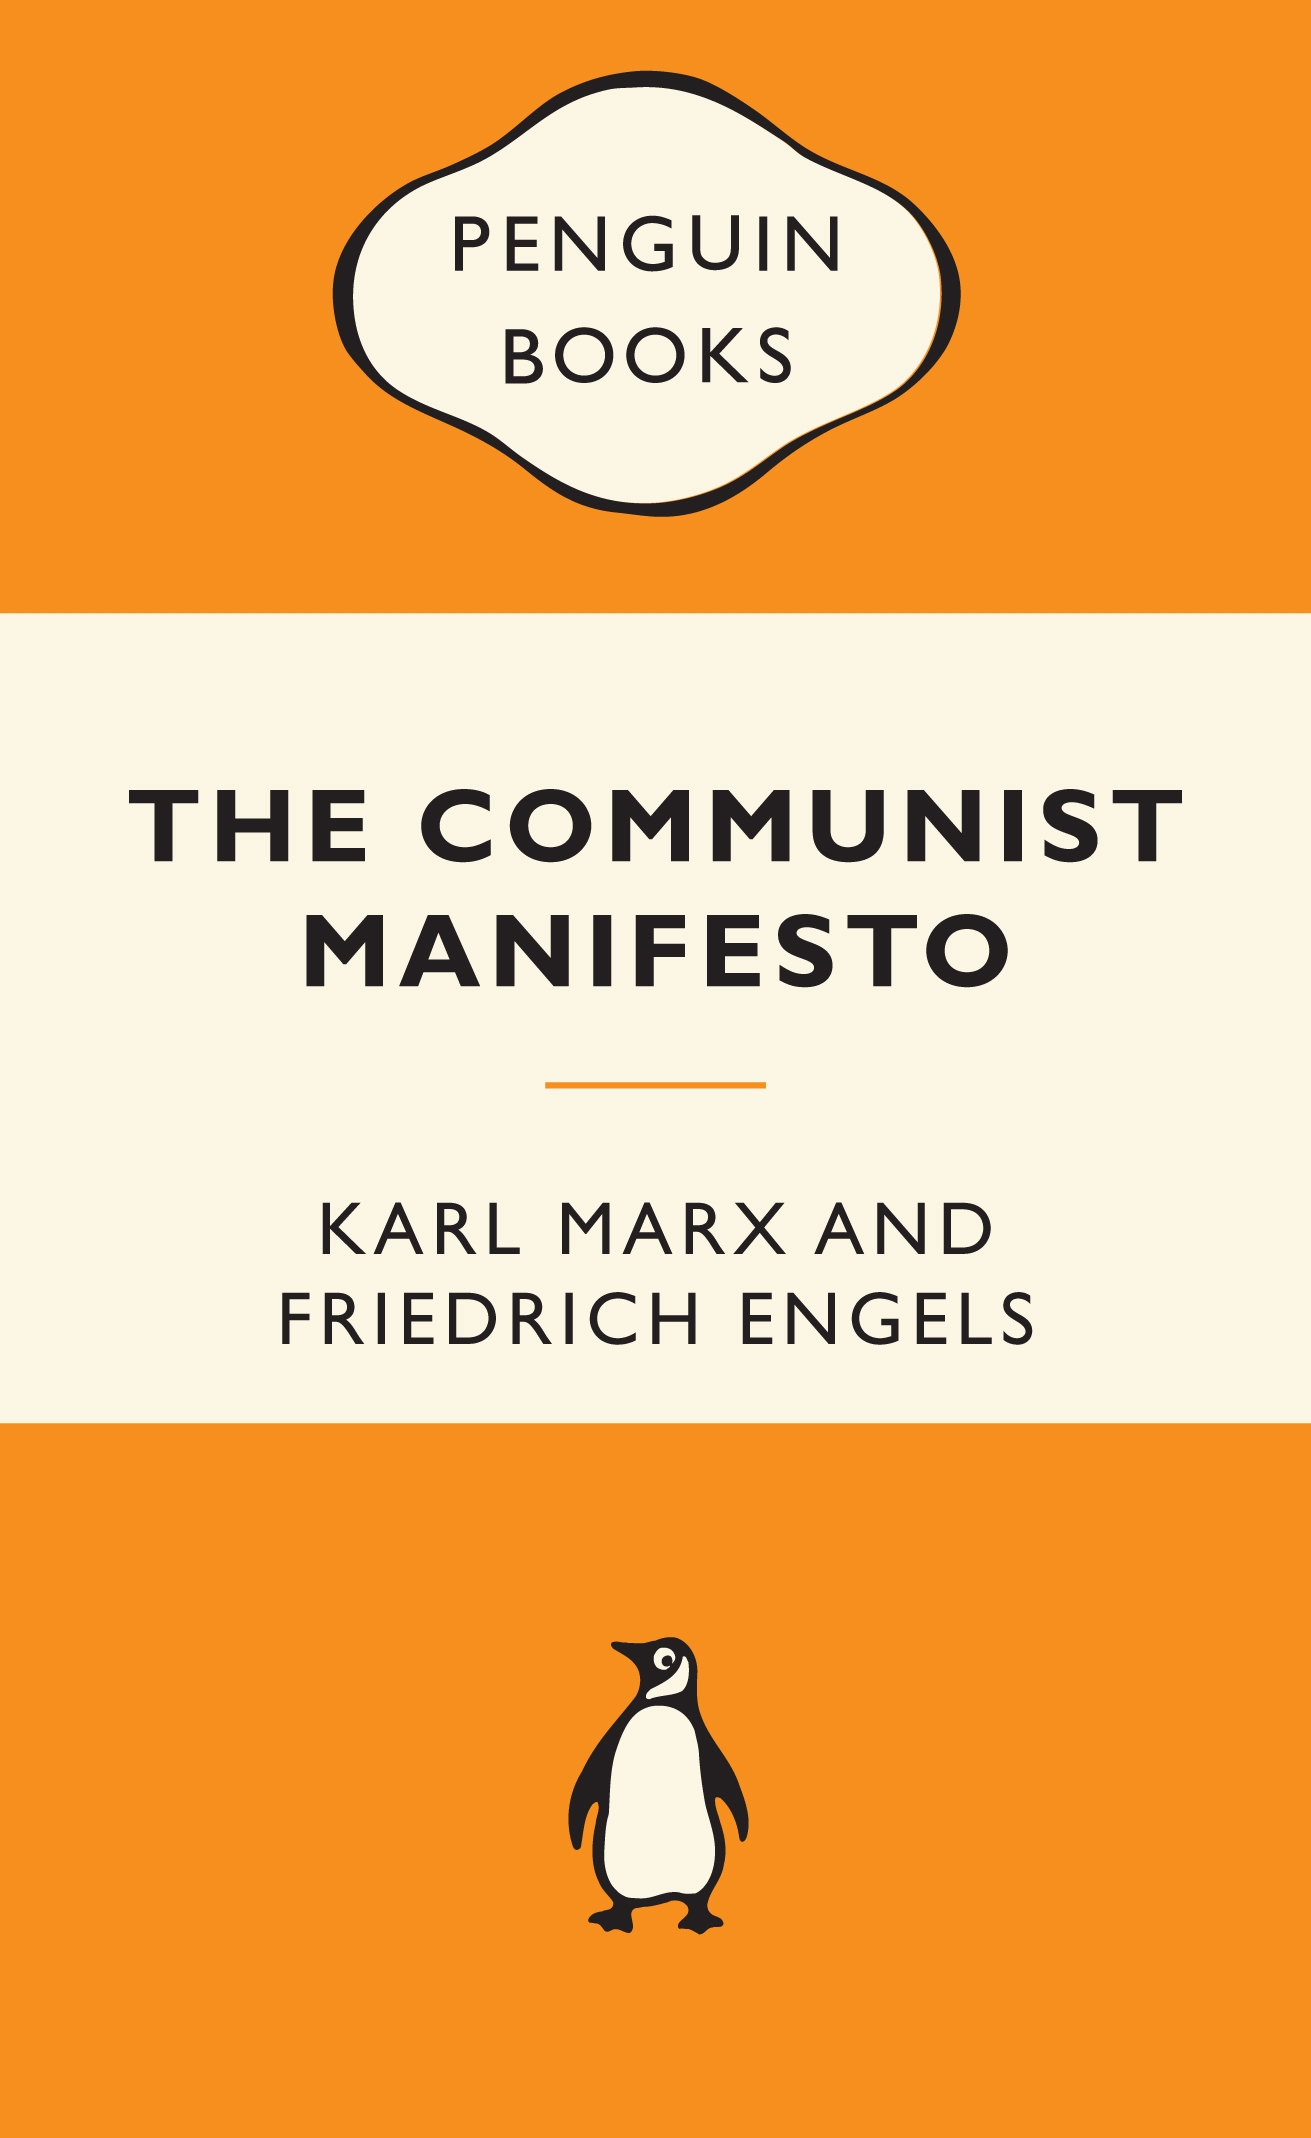 karl marx writings